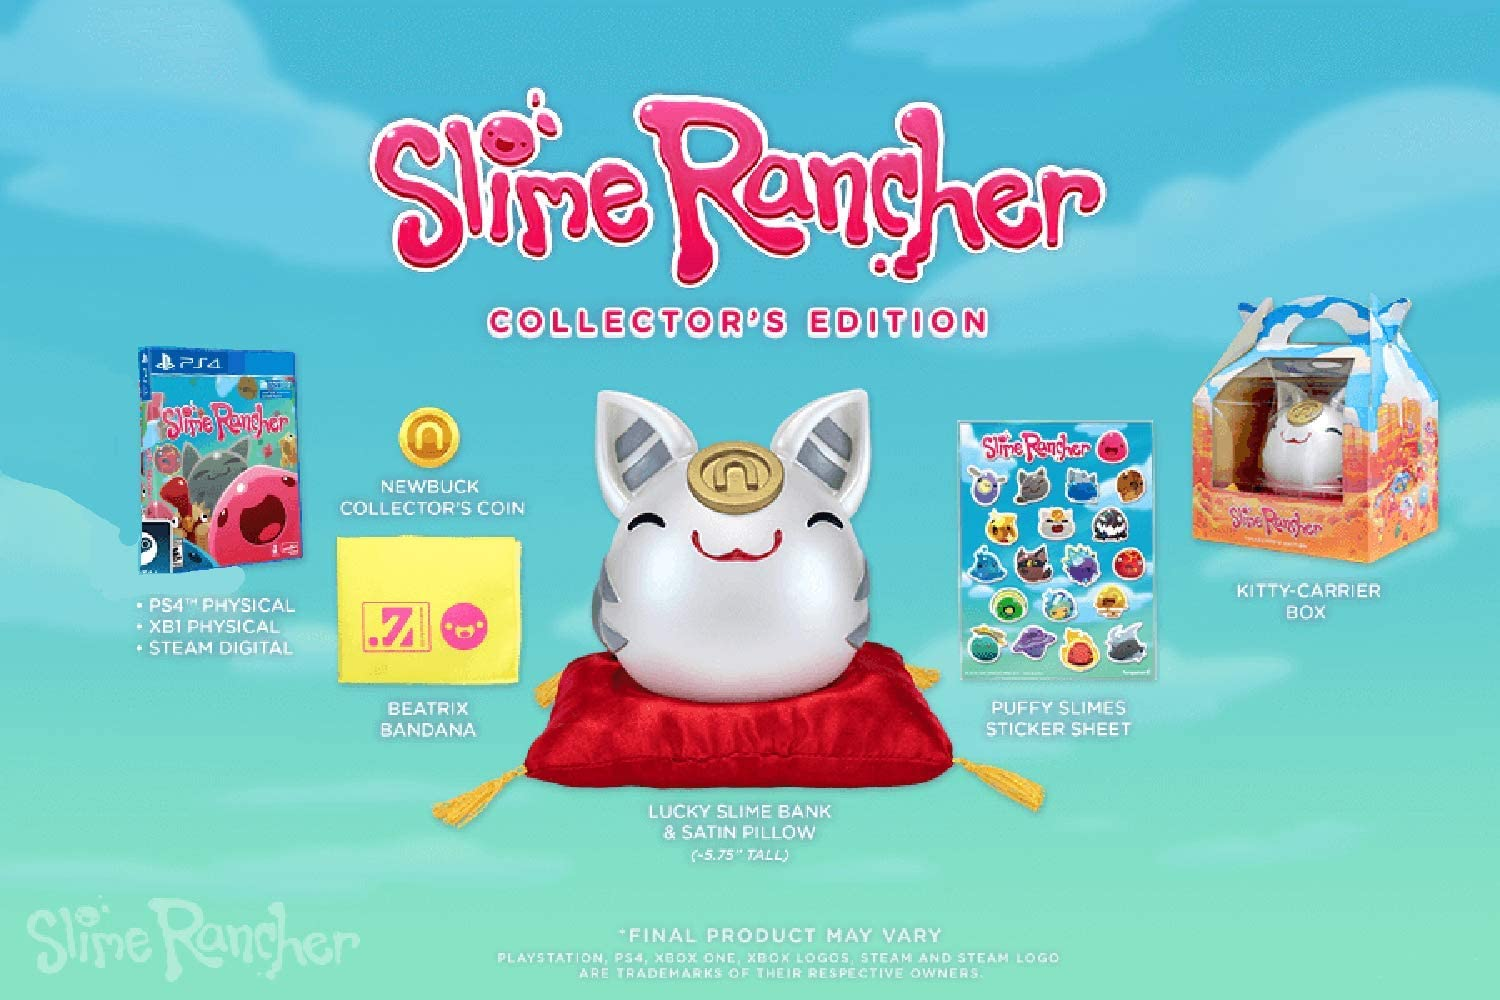 No Game Slime Rancher Collectors Edition